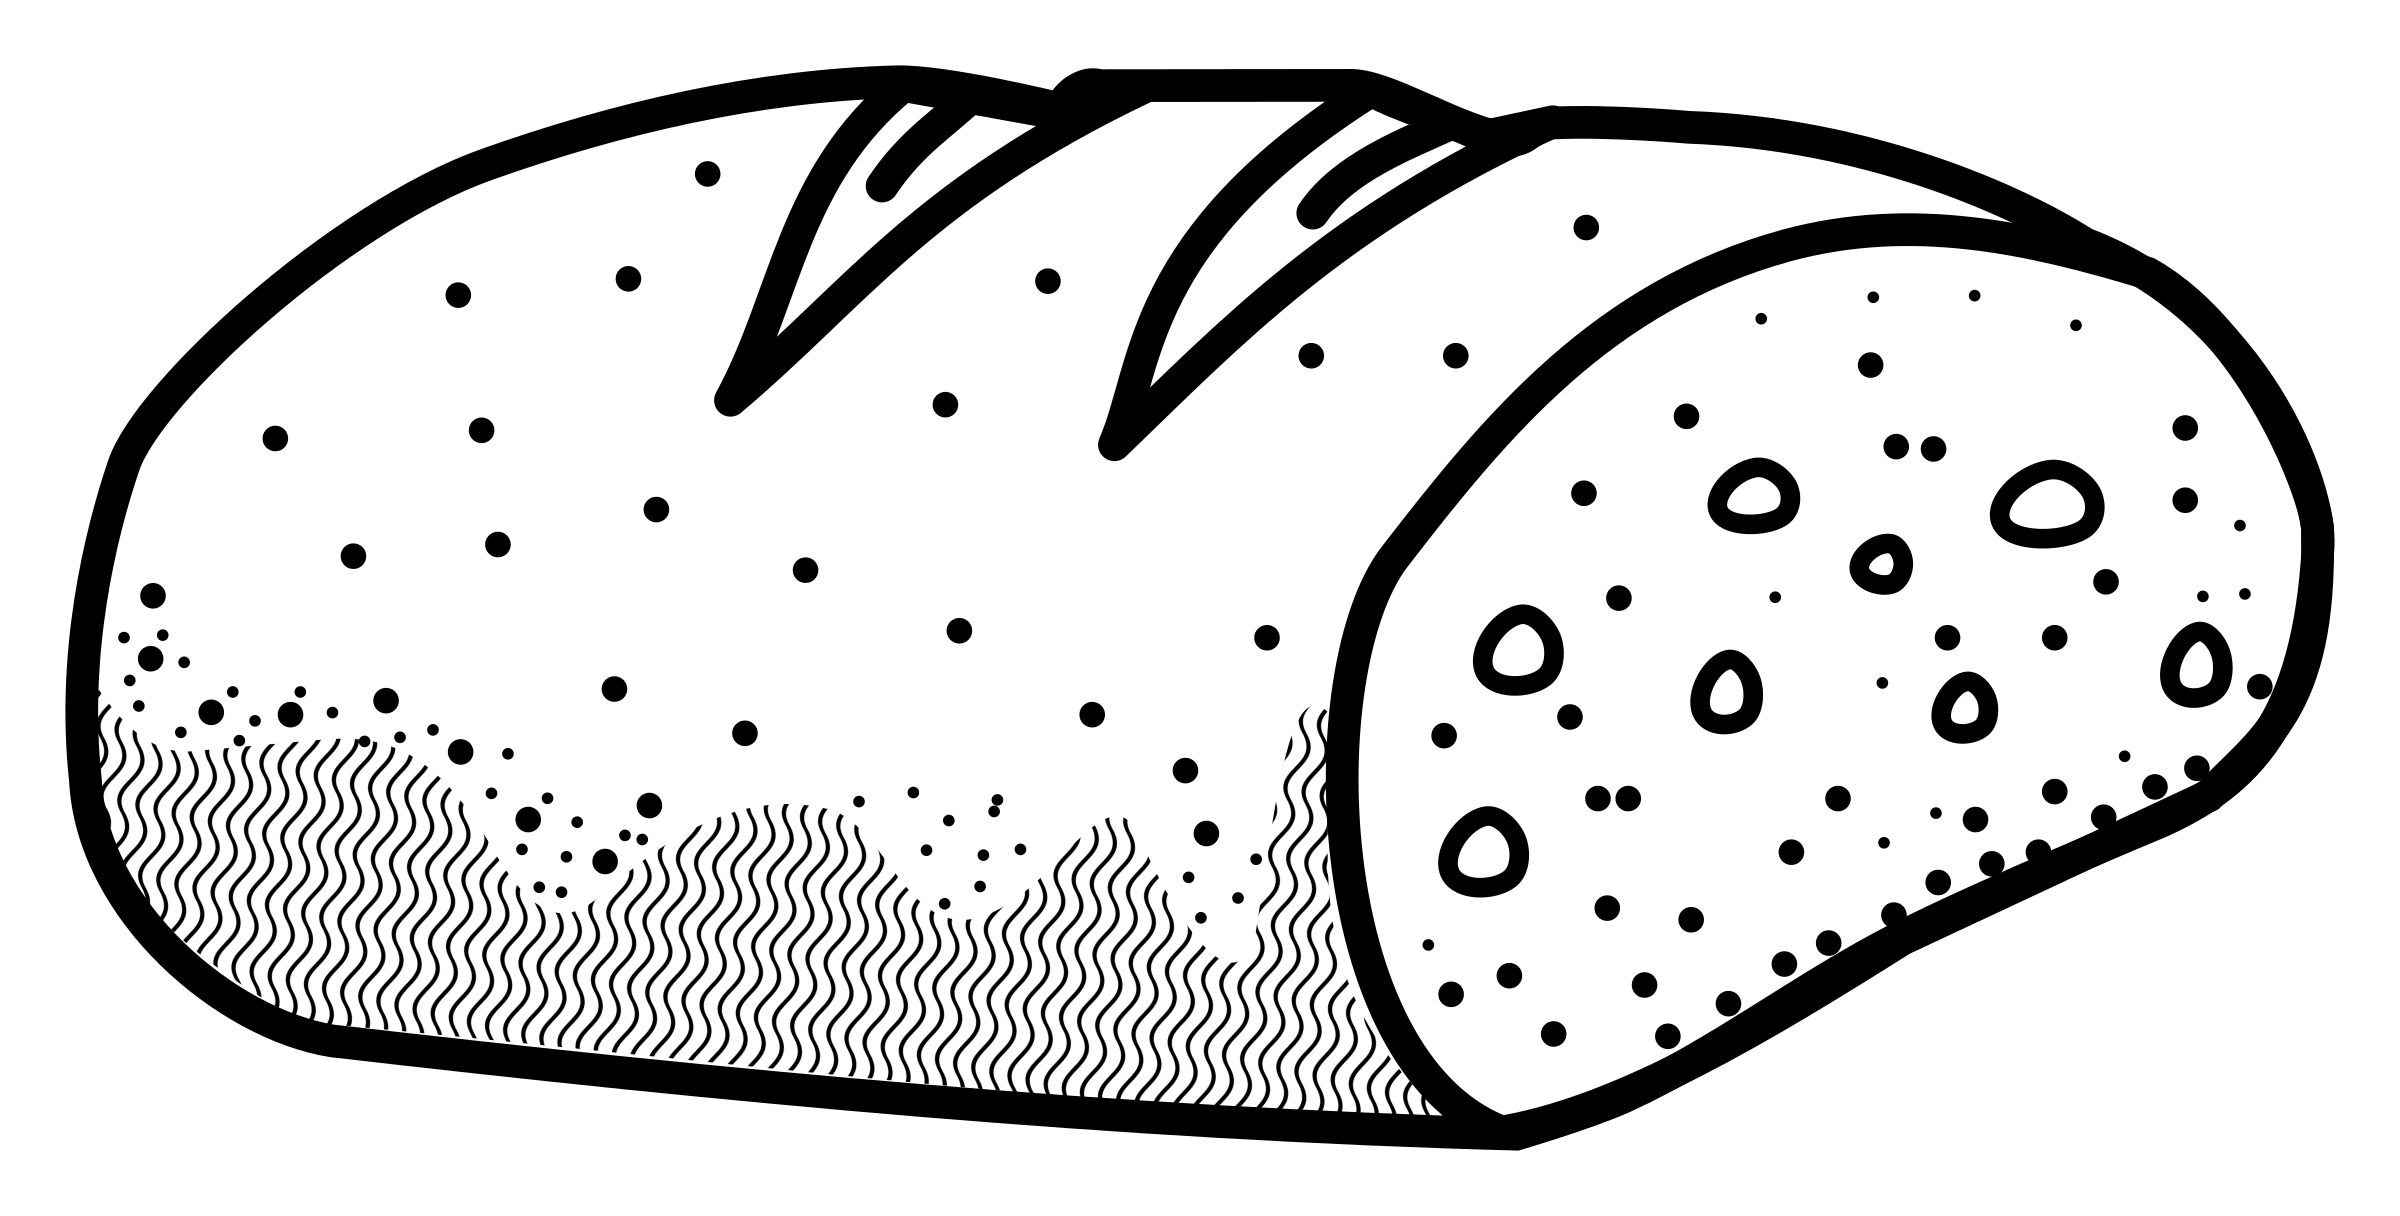 Black and white station. Clipart bread conchas